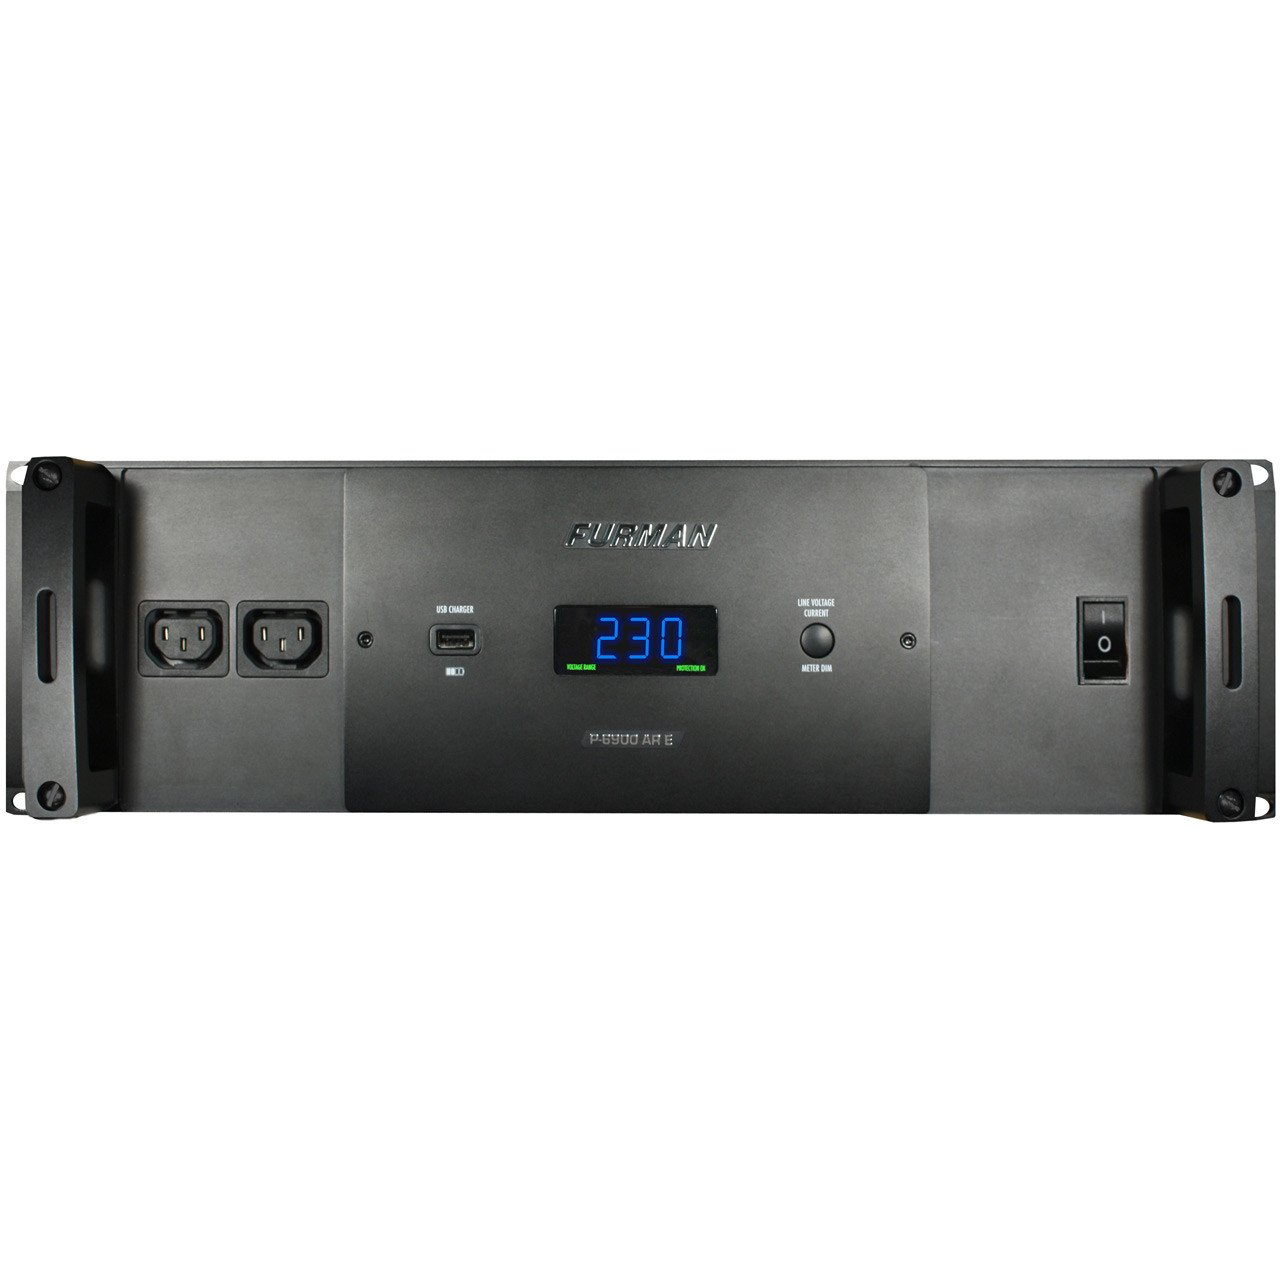 Power Conditioners - Furman P-6900 AR E Power Conditioner And Voltage Regulator